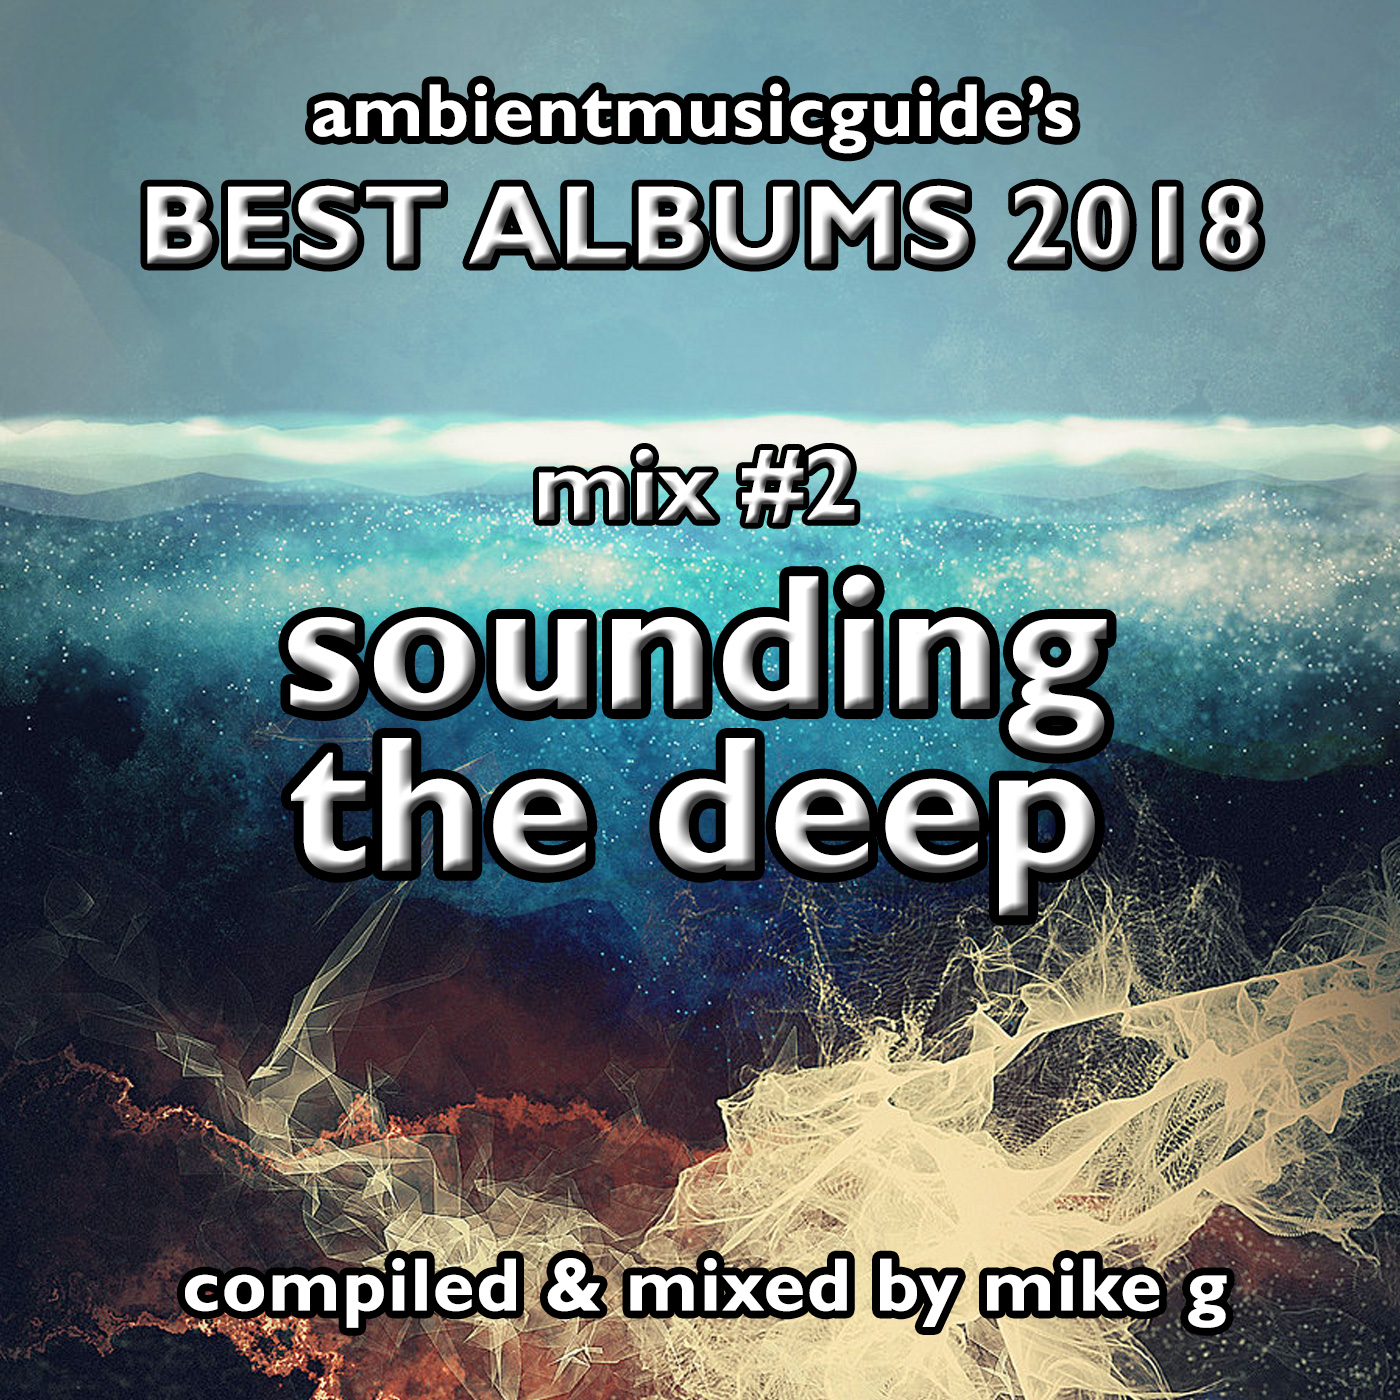 Best Albums 2018 Mix #2 - Sounding The Deep compiled by Mike G